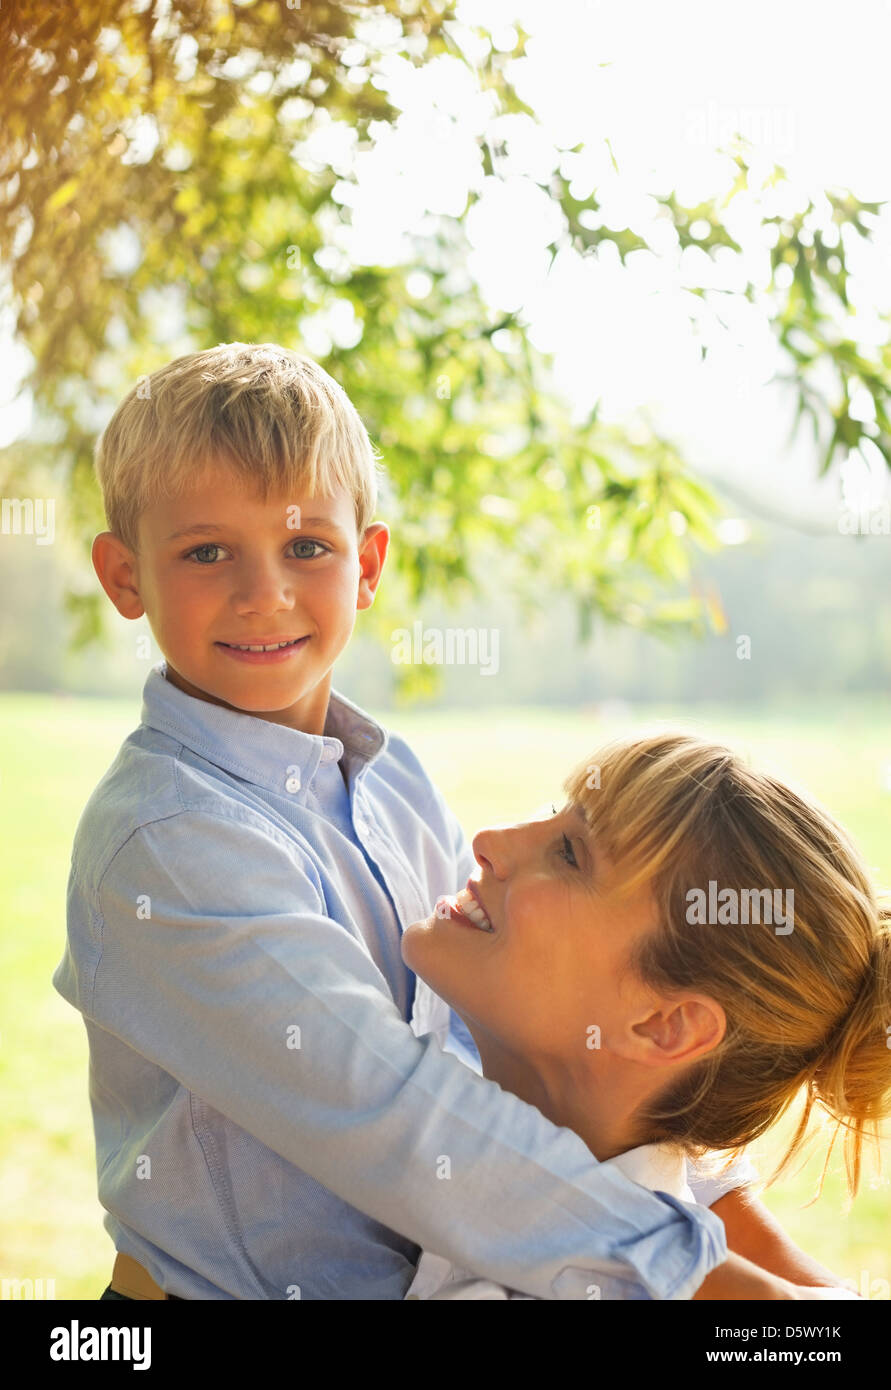 Mother and son hugging in park - Stock Image